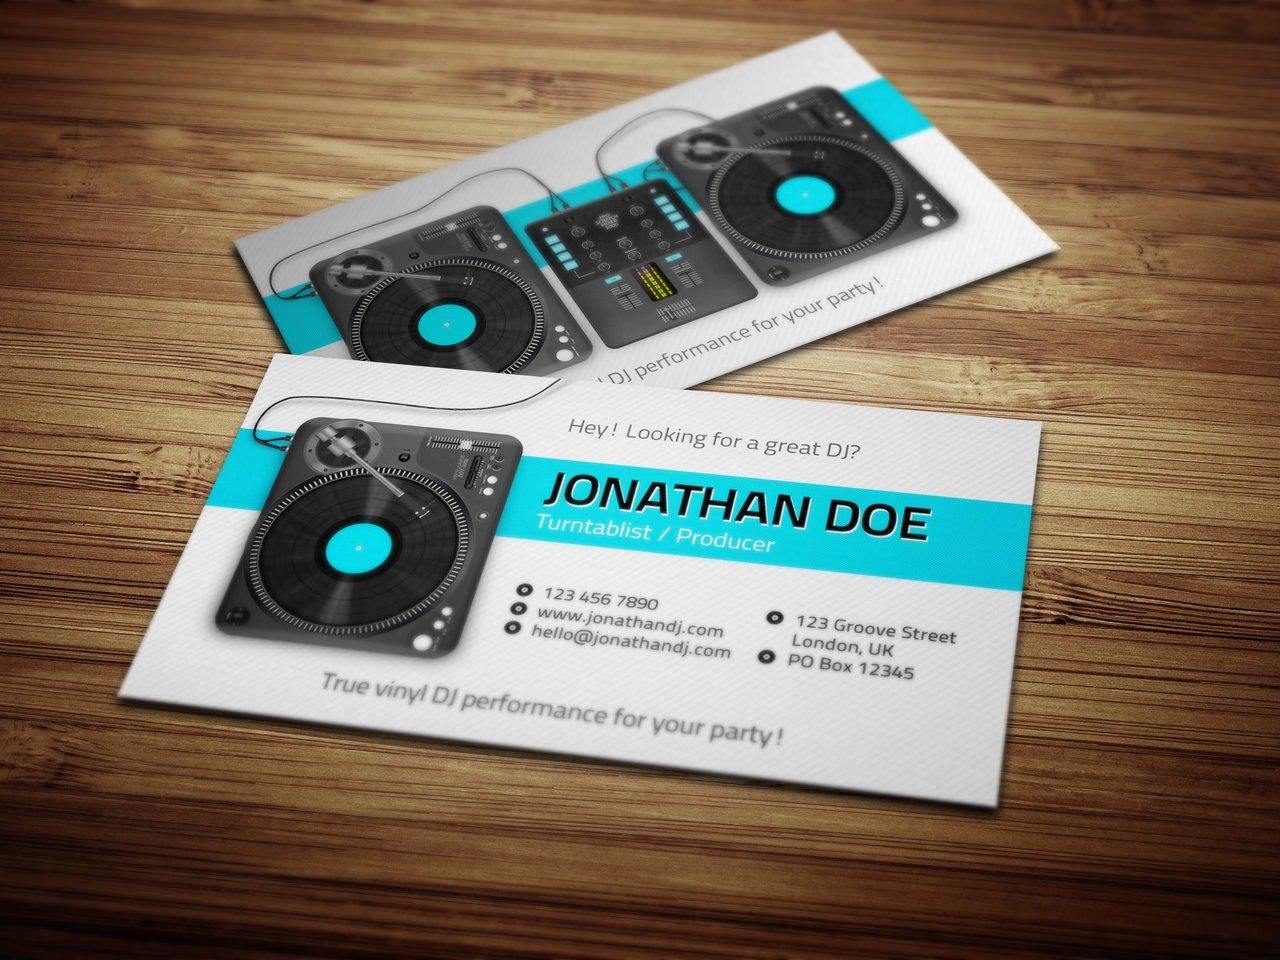 Sample Dj Business Cards Luxury Your Questions What Do I Need to Set Up Legally as A Dj